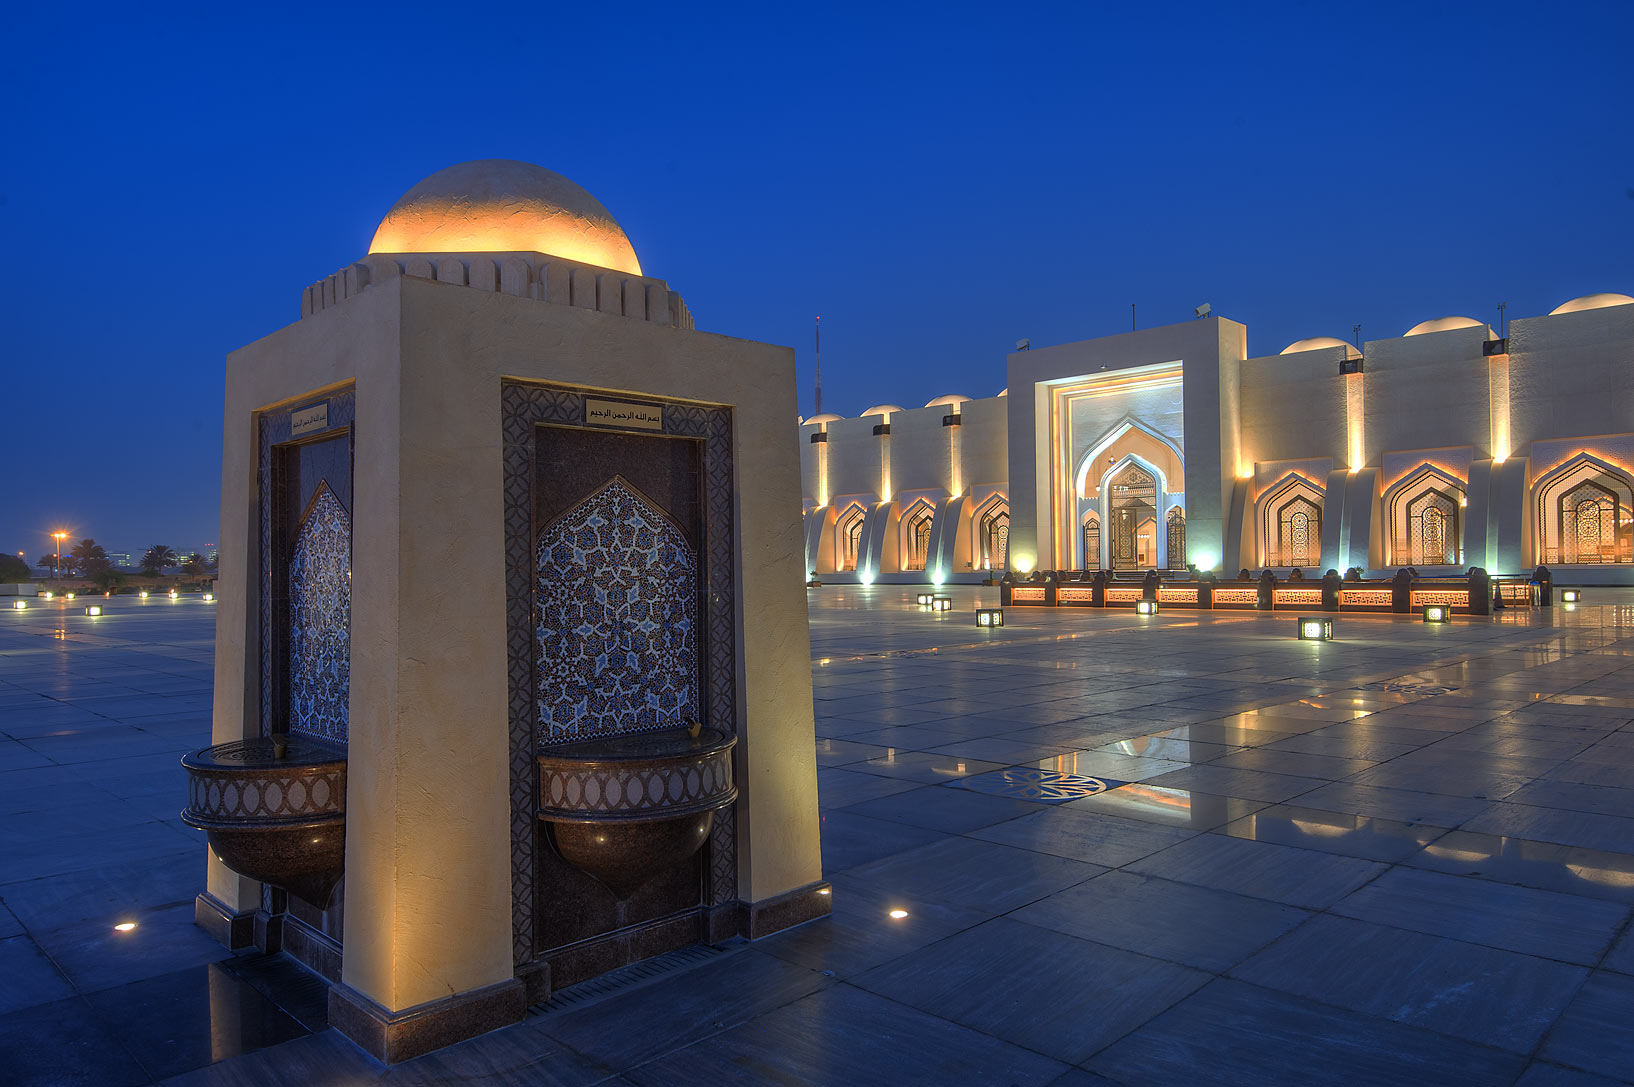 Drinking fountain of State Mosque (Sheikh Muhammad Ibn Abdul Wahhab Mosque). Doha, Qatar